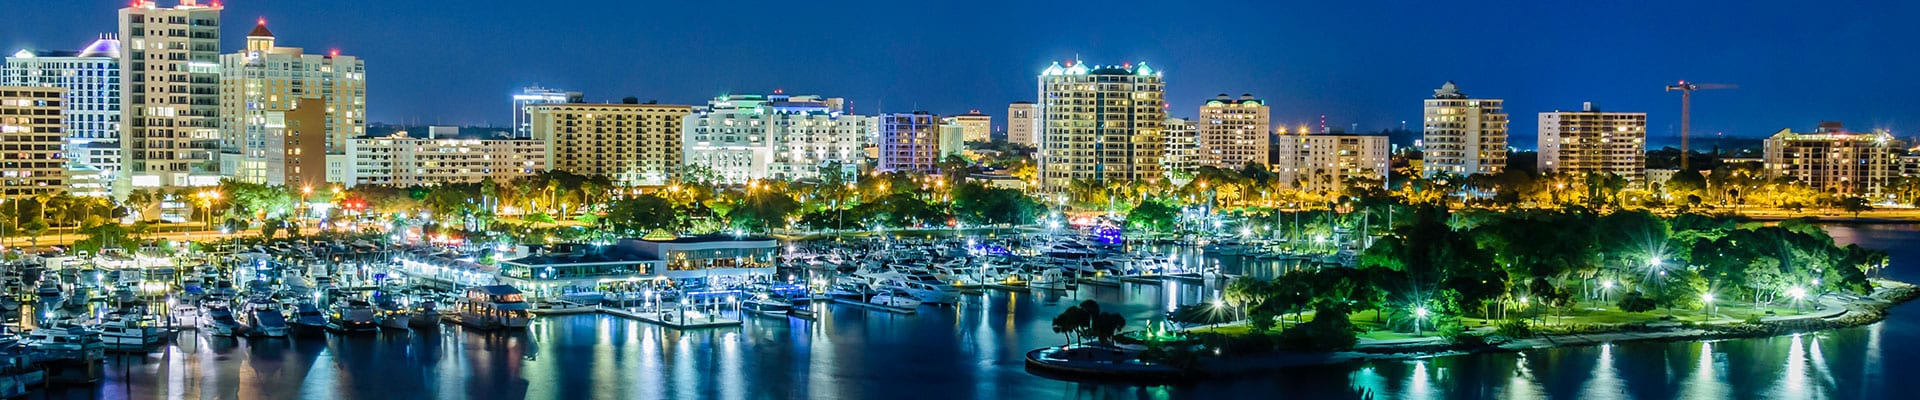 Nightlife BLVD SArasota